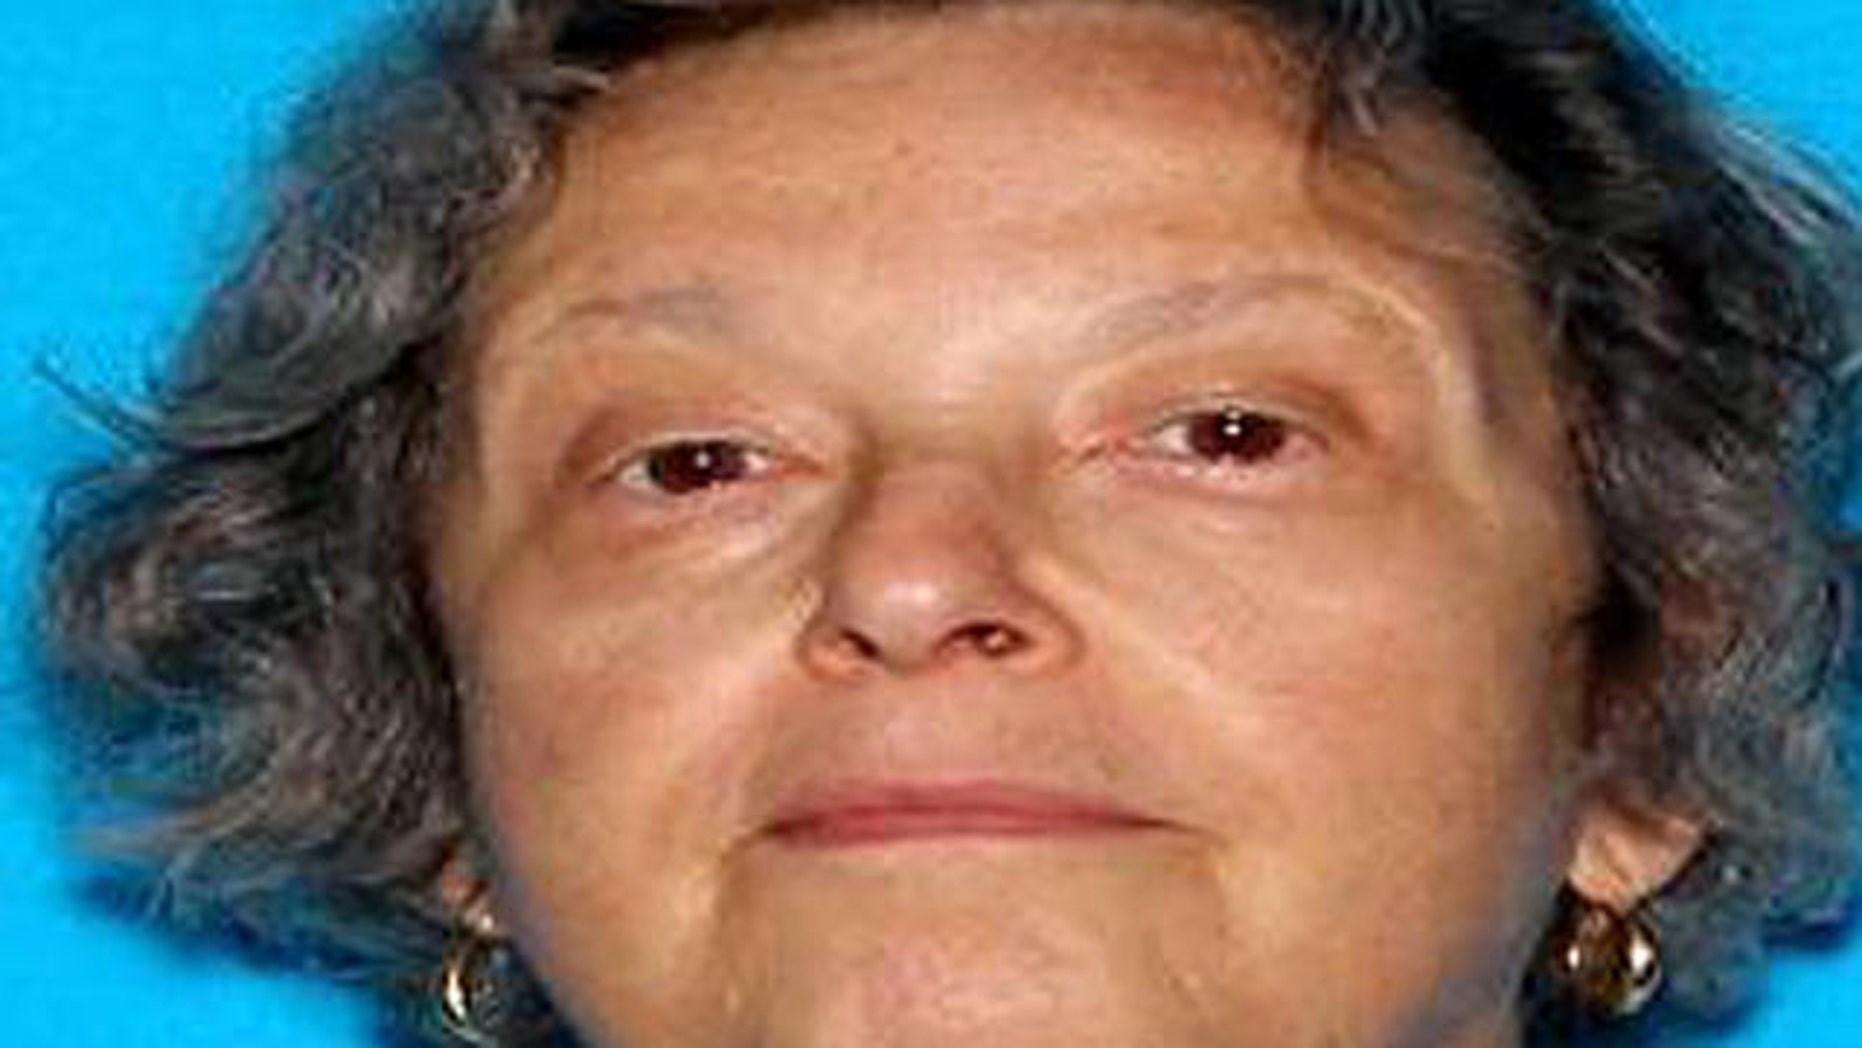 This photo provided by Wilmington Police shows Marsha Lee, 65, who was reported missing Dec. 19, 2011.